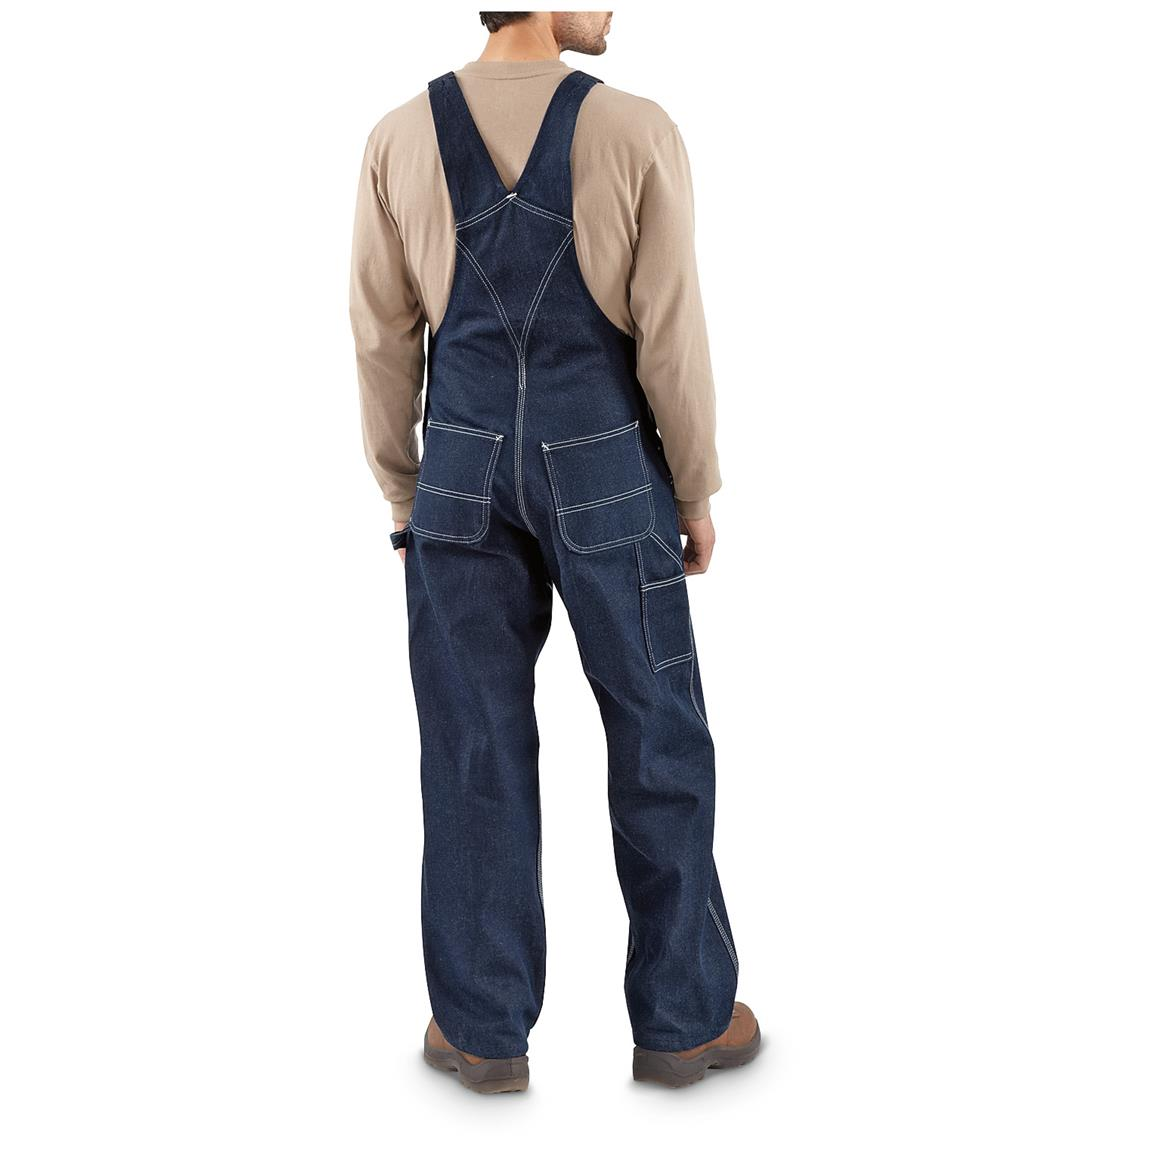 11.75-ounce, 100% cotton rigid denim for topnotch durability